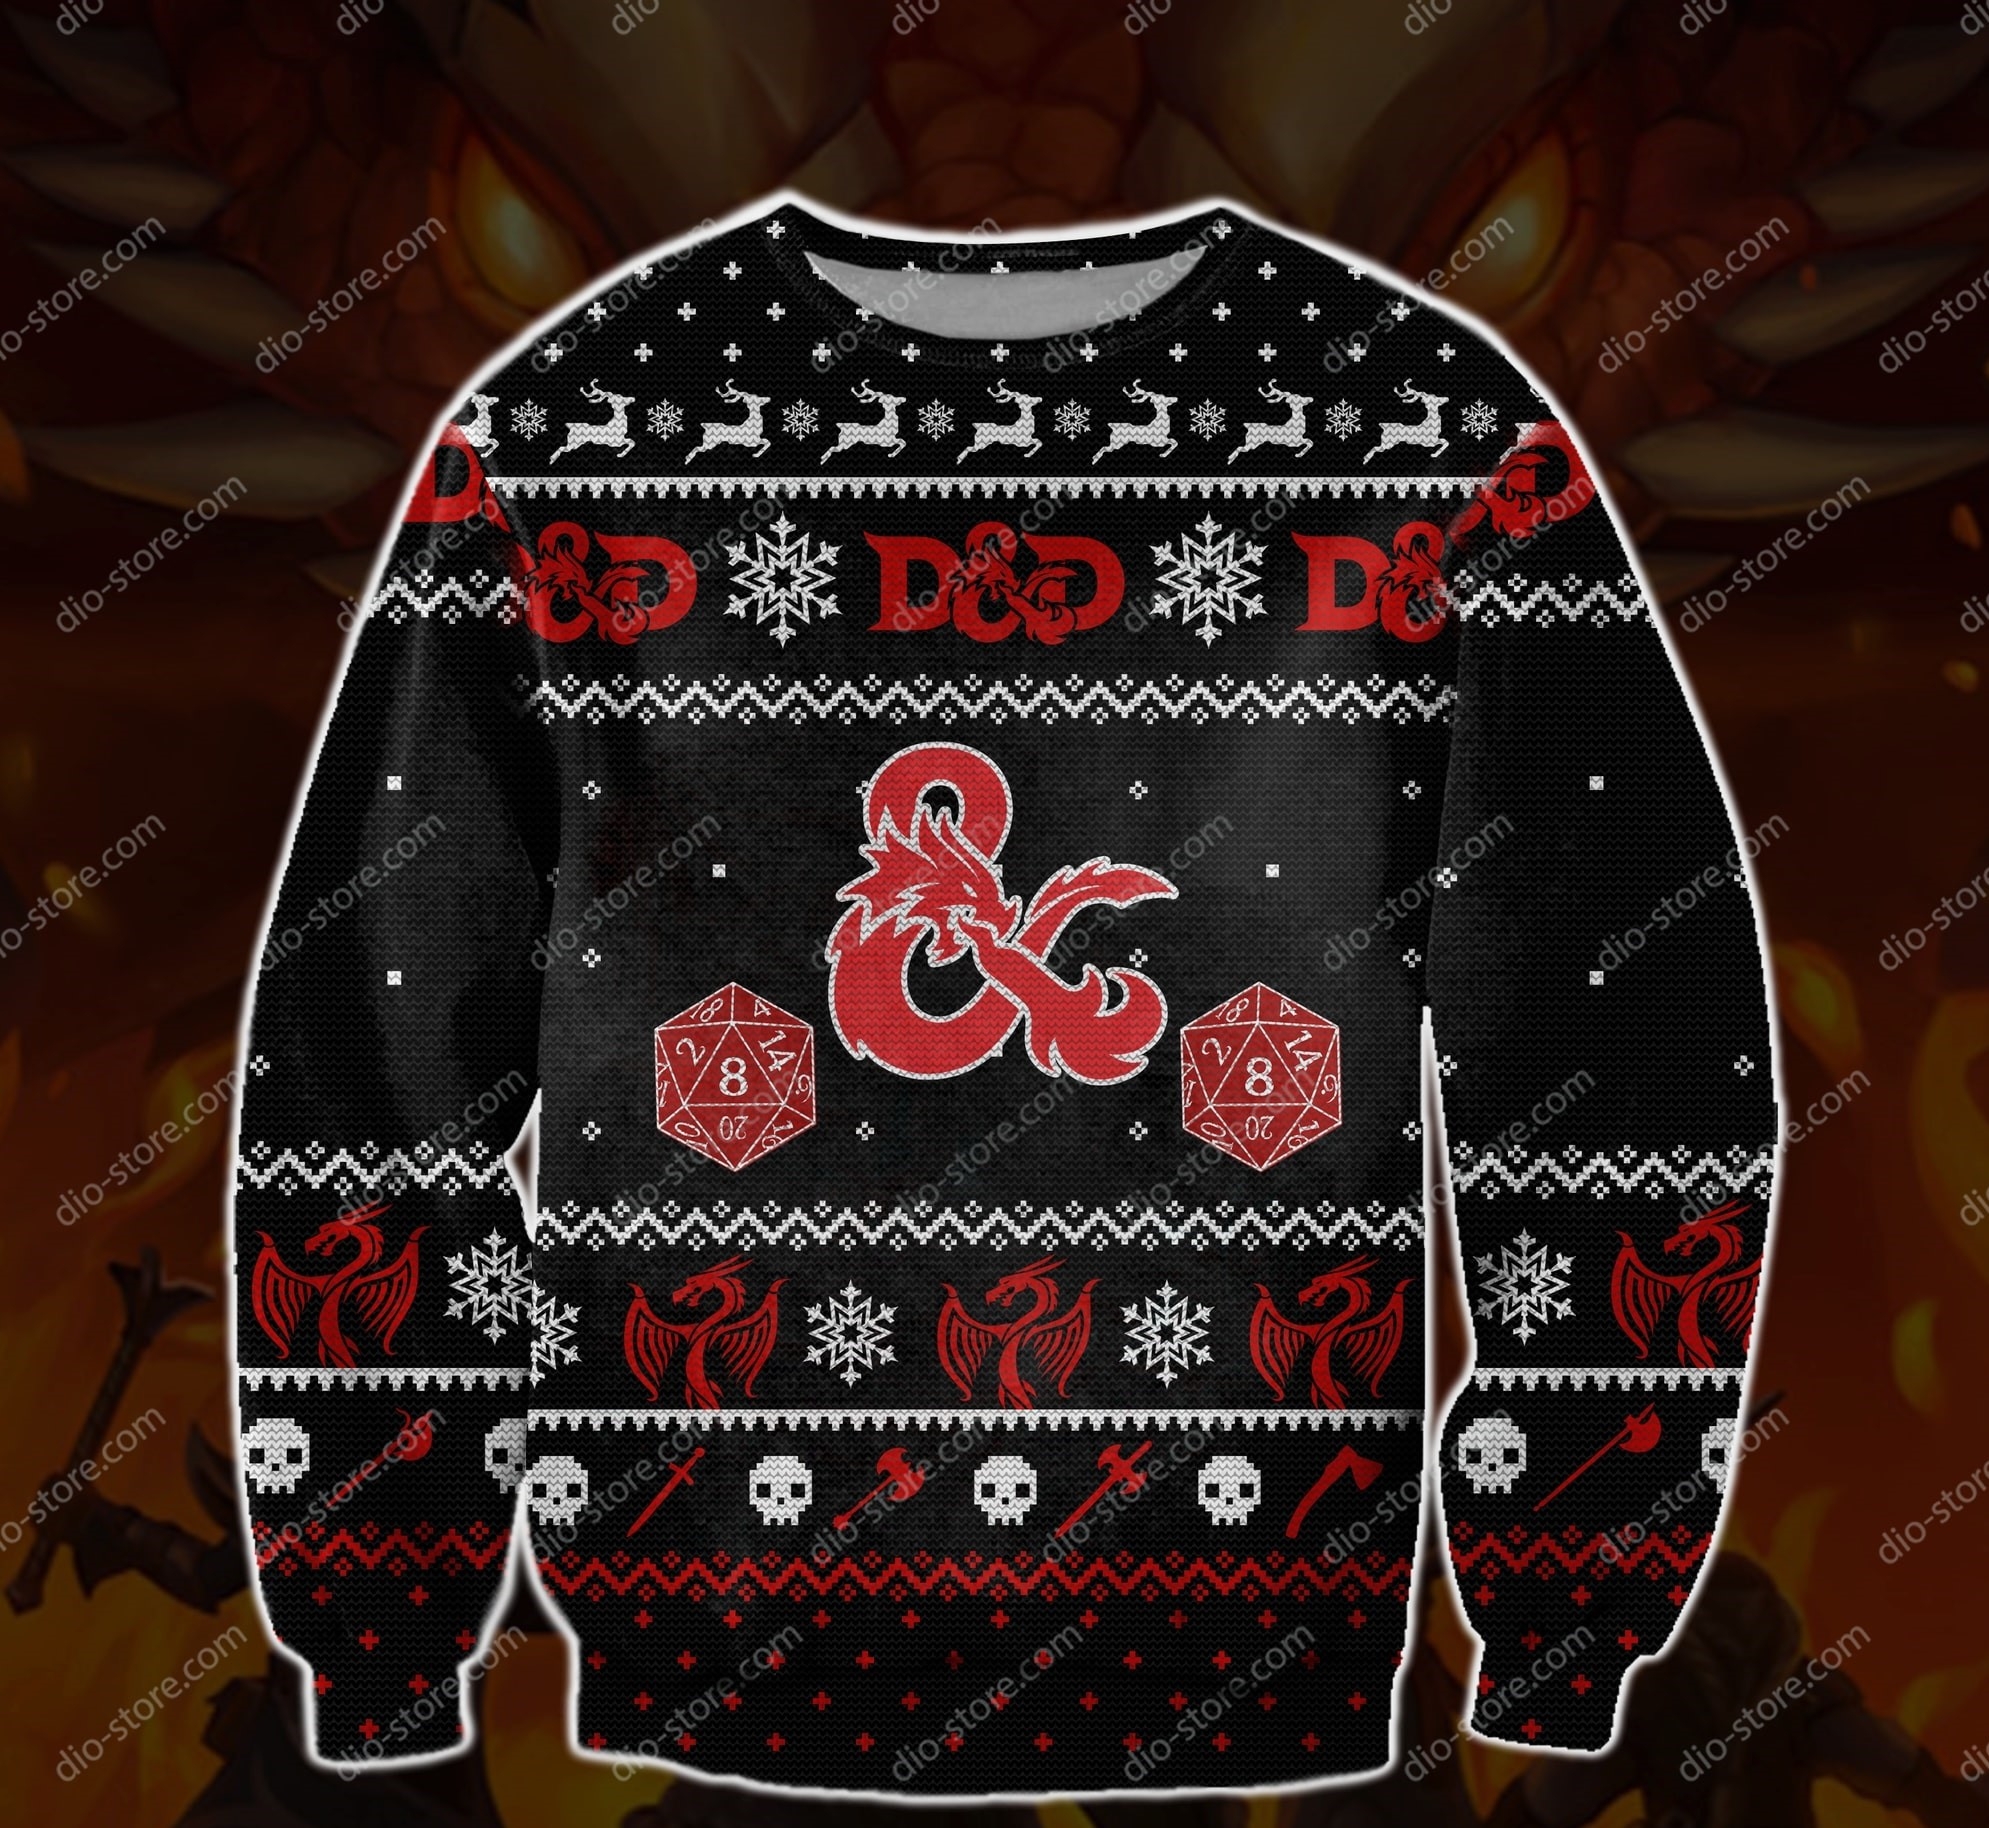 dungeons and dragons all over printed ugly christmas sweater 2 - Copy (3)